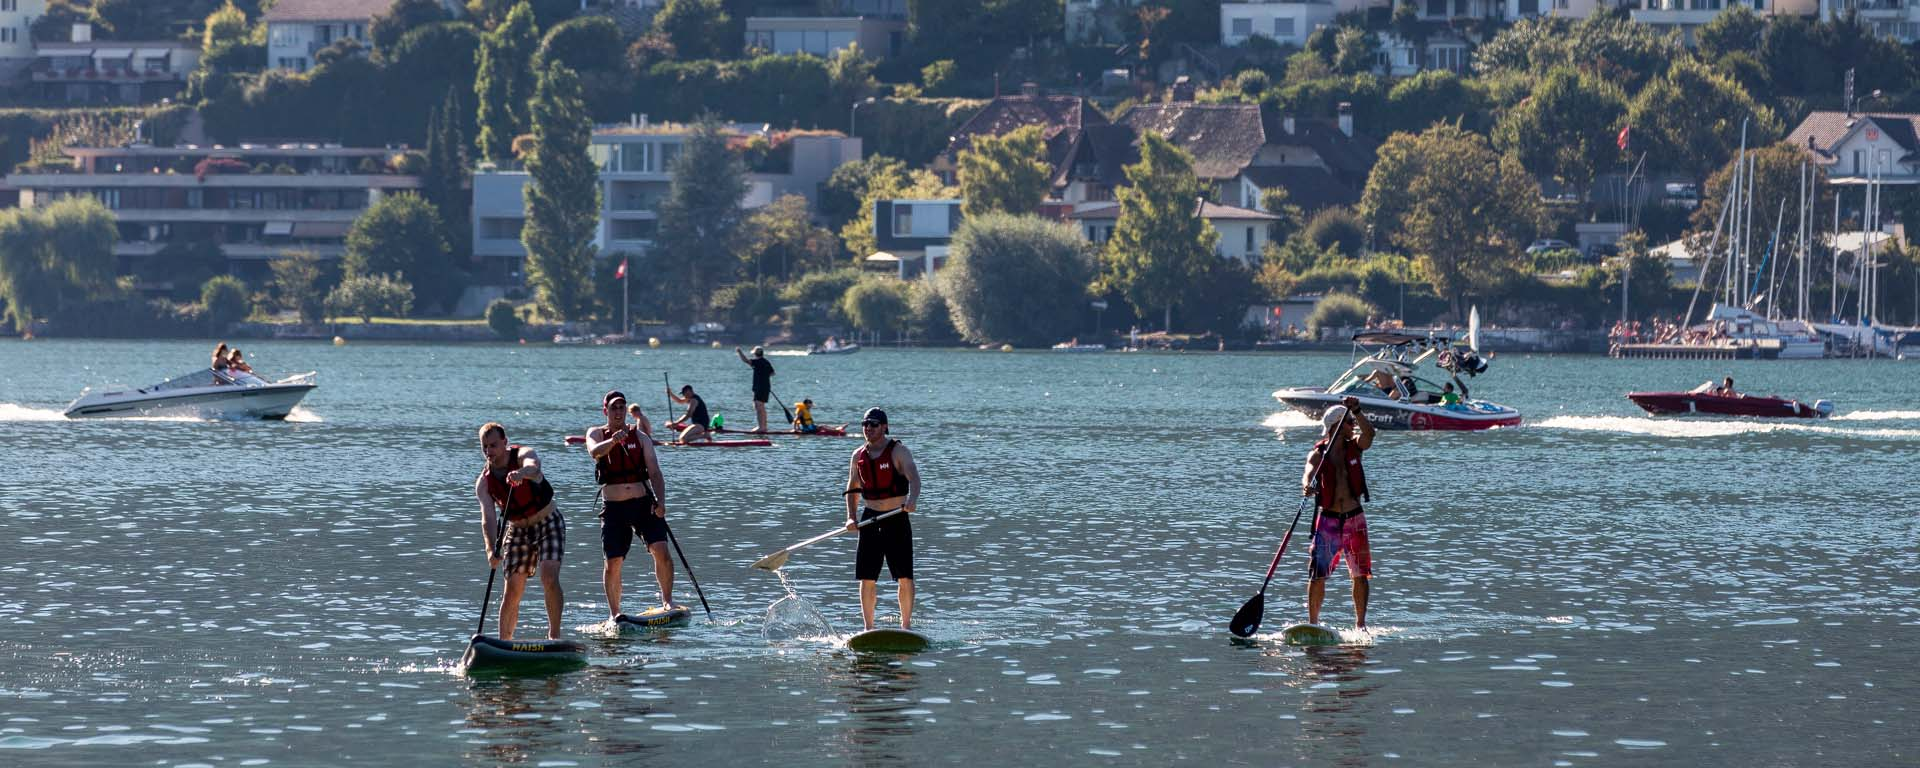 Stand-up paddle am Bielersee